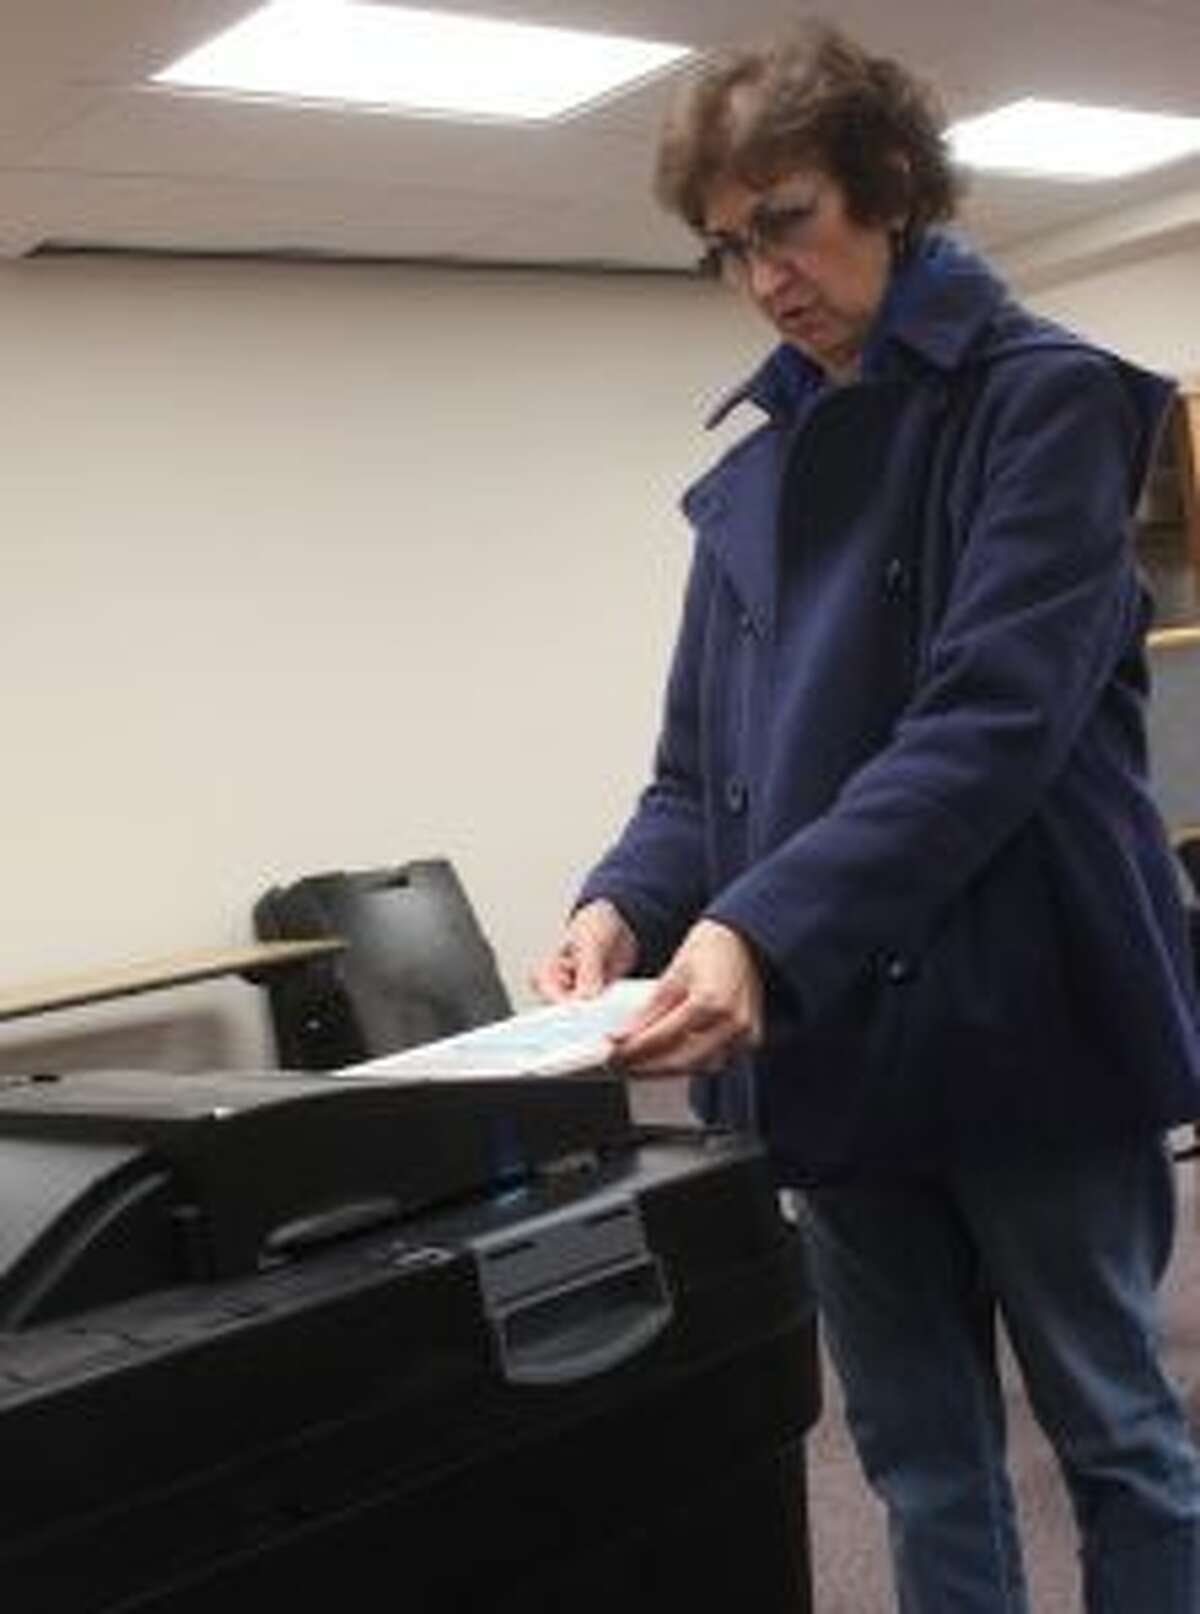 Jennifer Cochran casts her sample ballot during an open house on Wednesday at Big Rapids City Hall. Hosted by City Clerk Tammy Gillis, the open house aimed to familiarize city and area voters with the new Dominion Voting election machines. (Pioneer photo/Brandon Fountain)